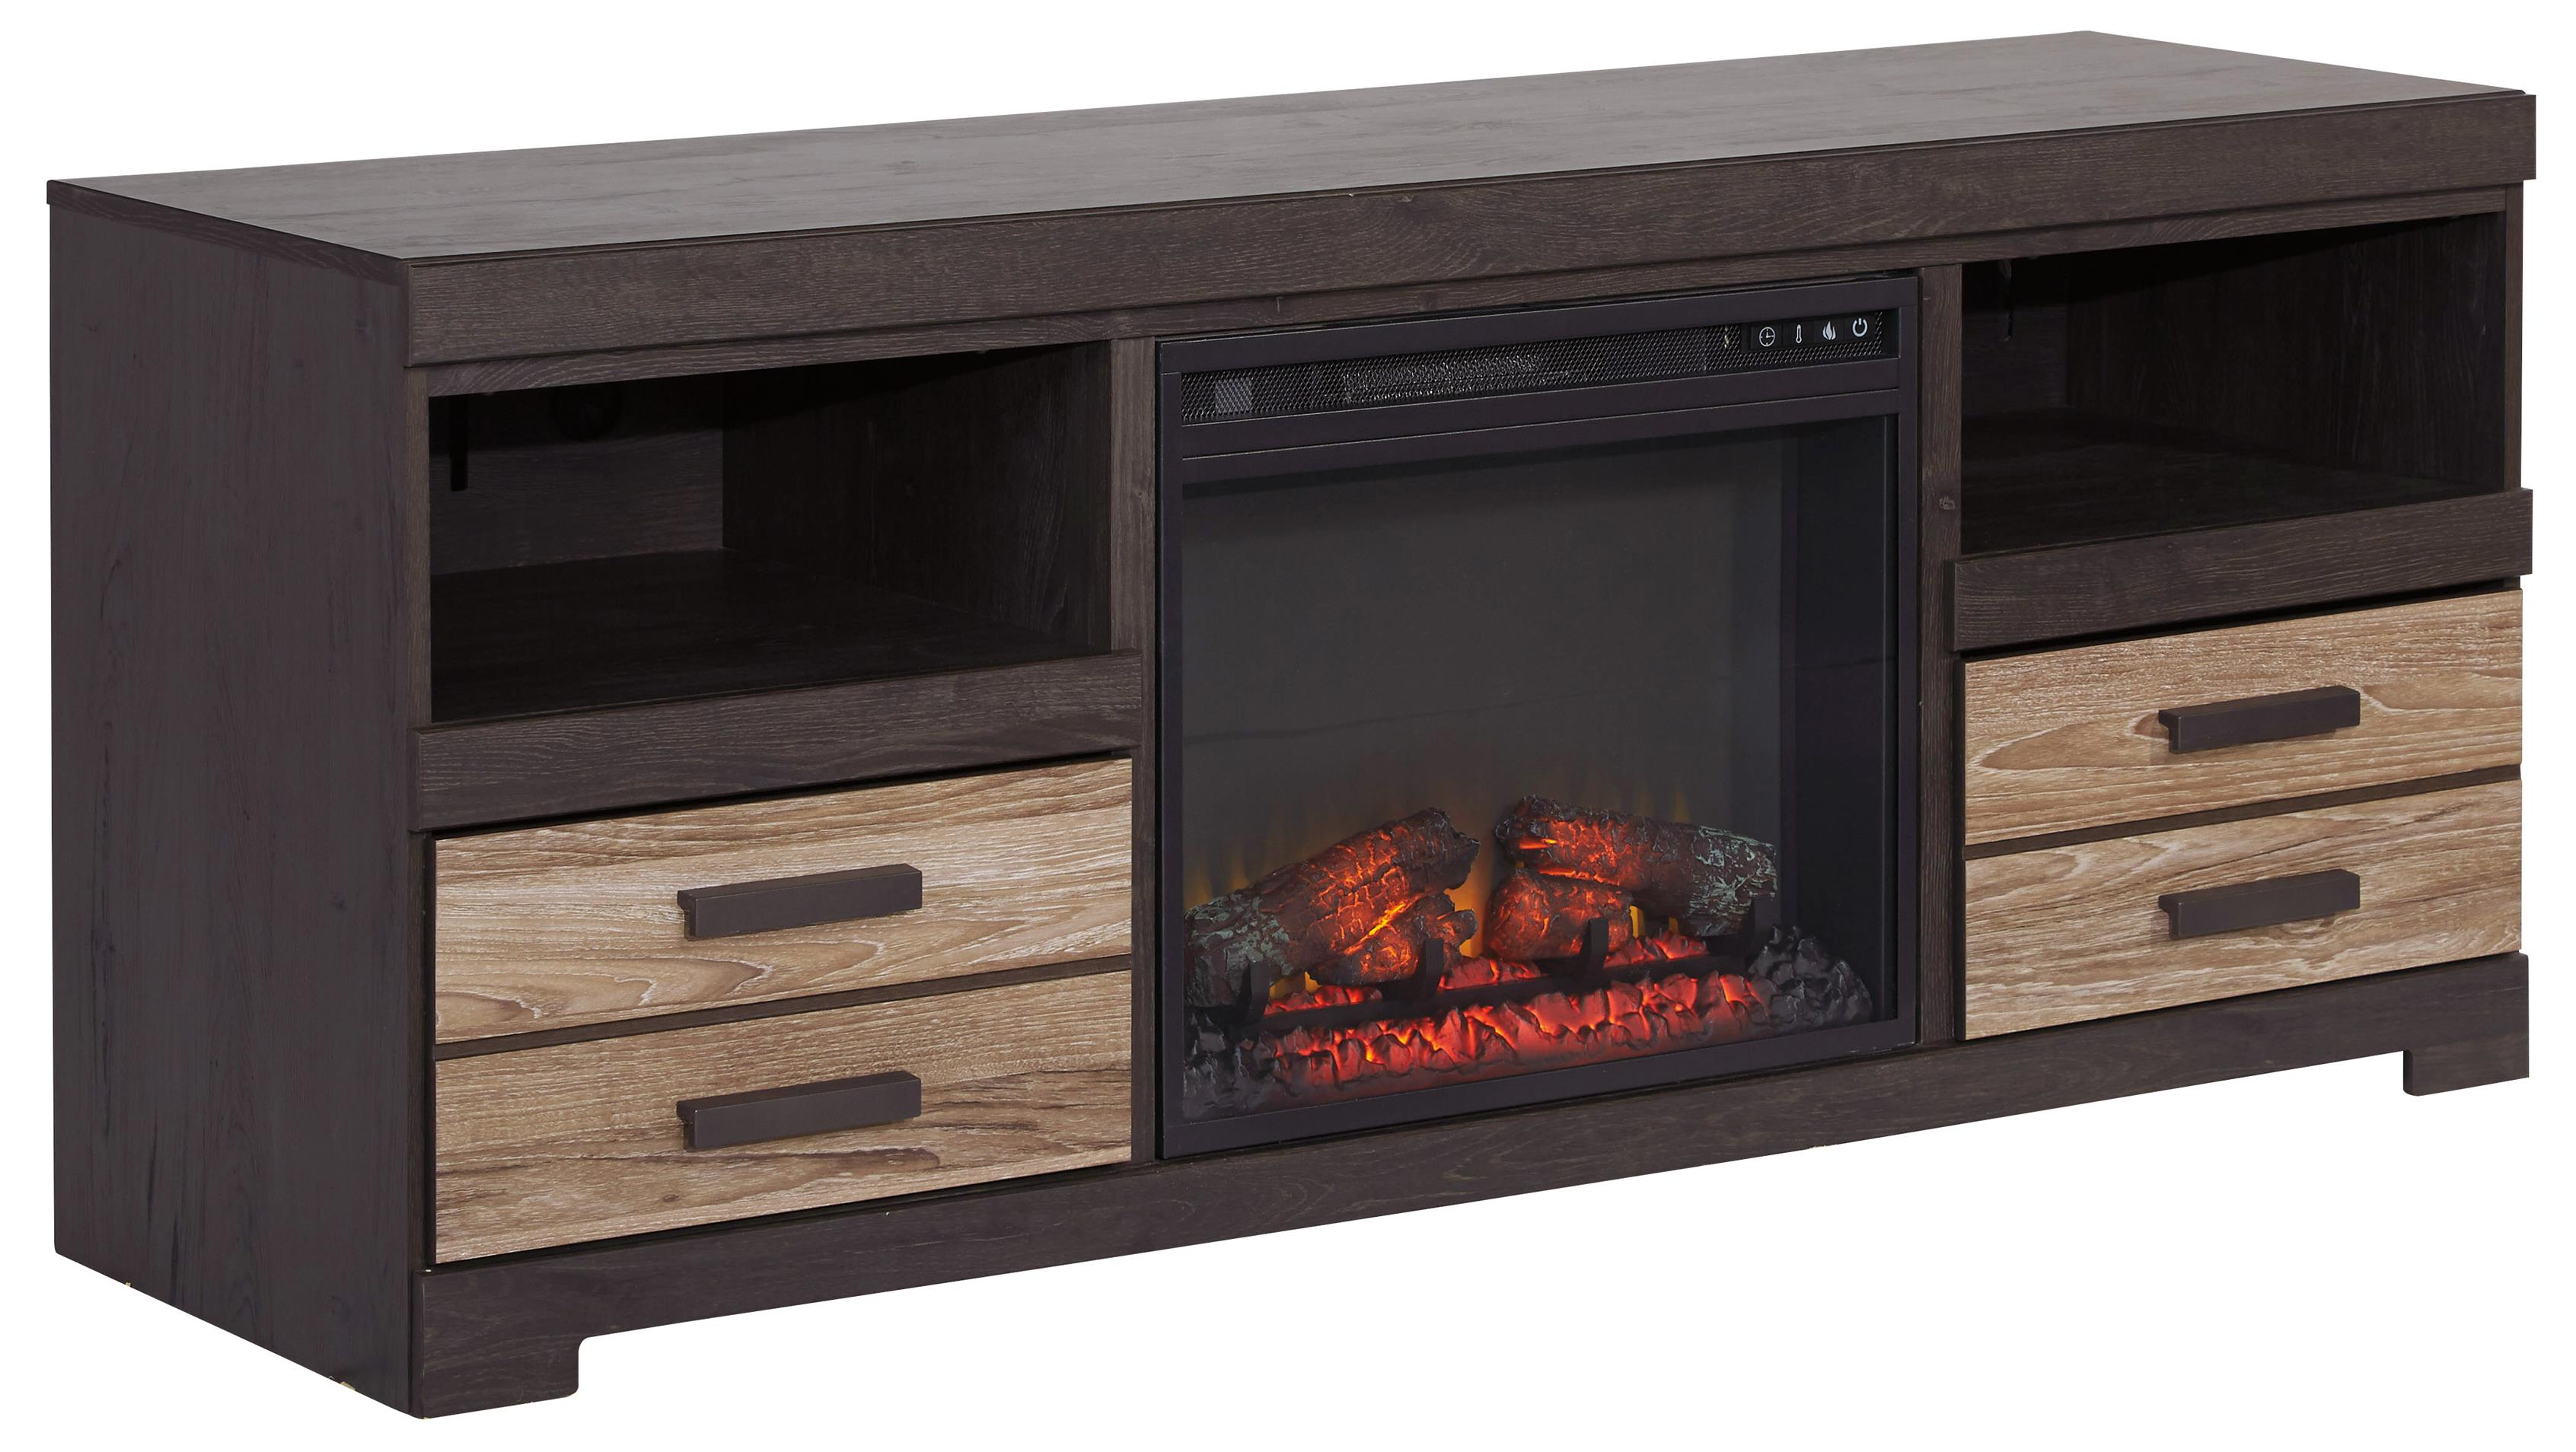 Contemporary Two-Tone Large TV Stand with Fireplace Insert